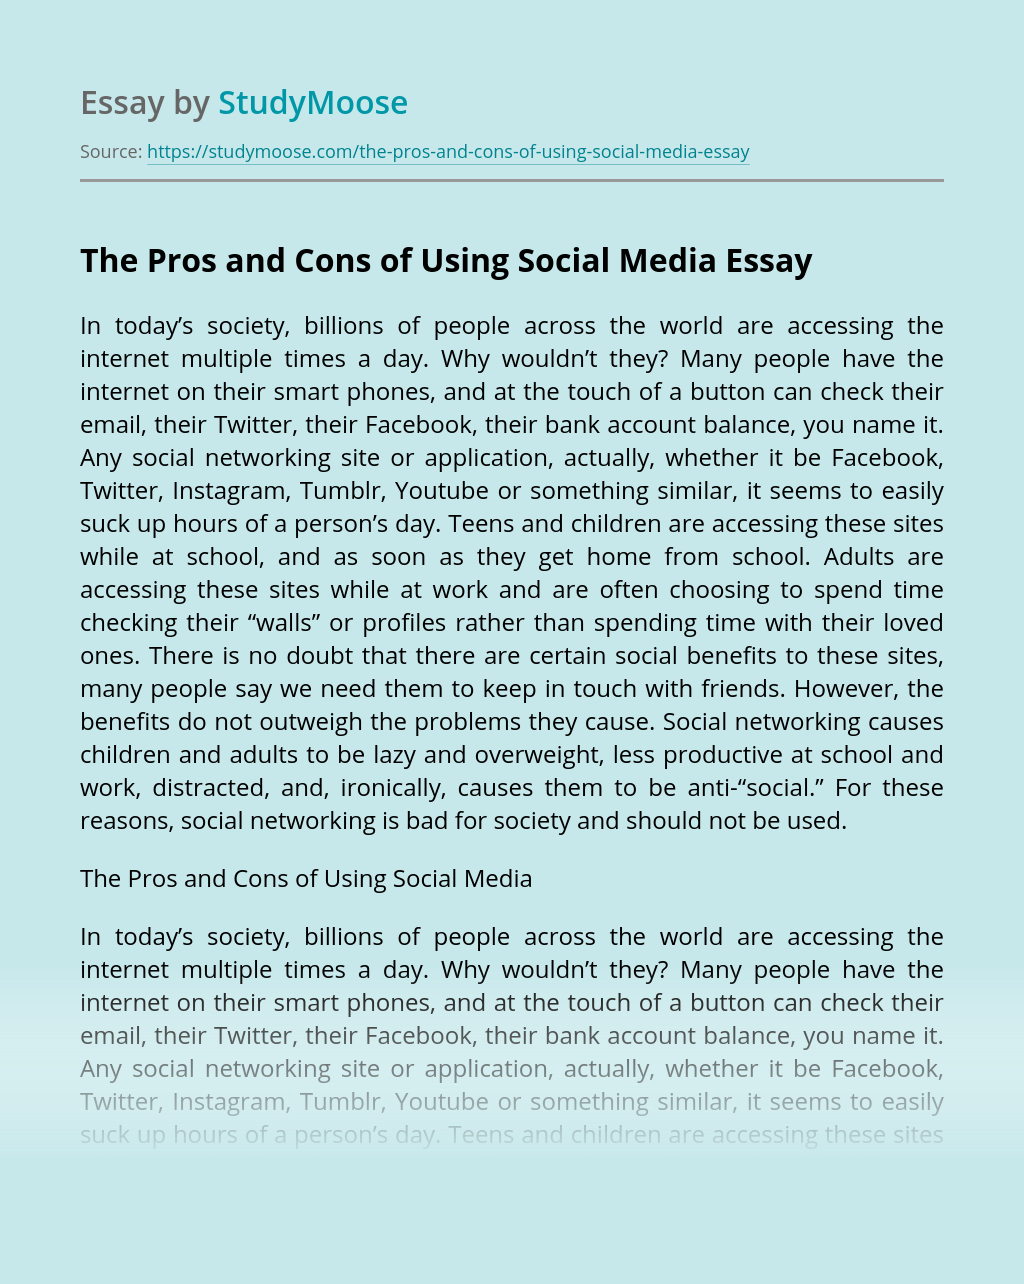 The Pros and Cons of Using Social Media